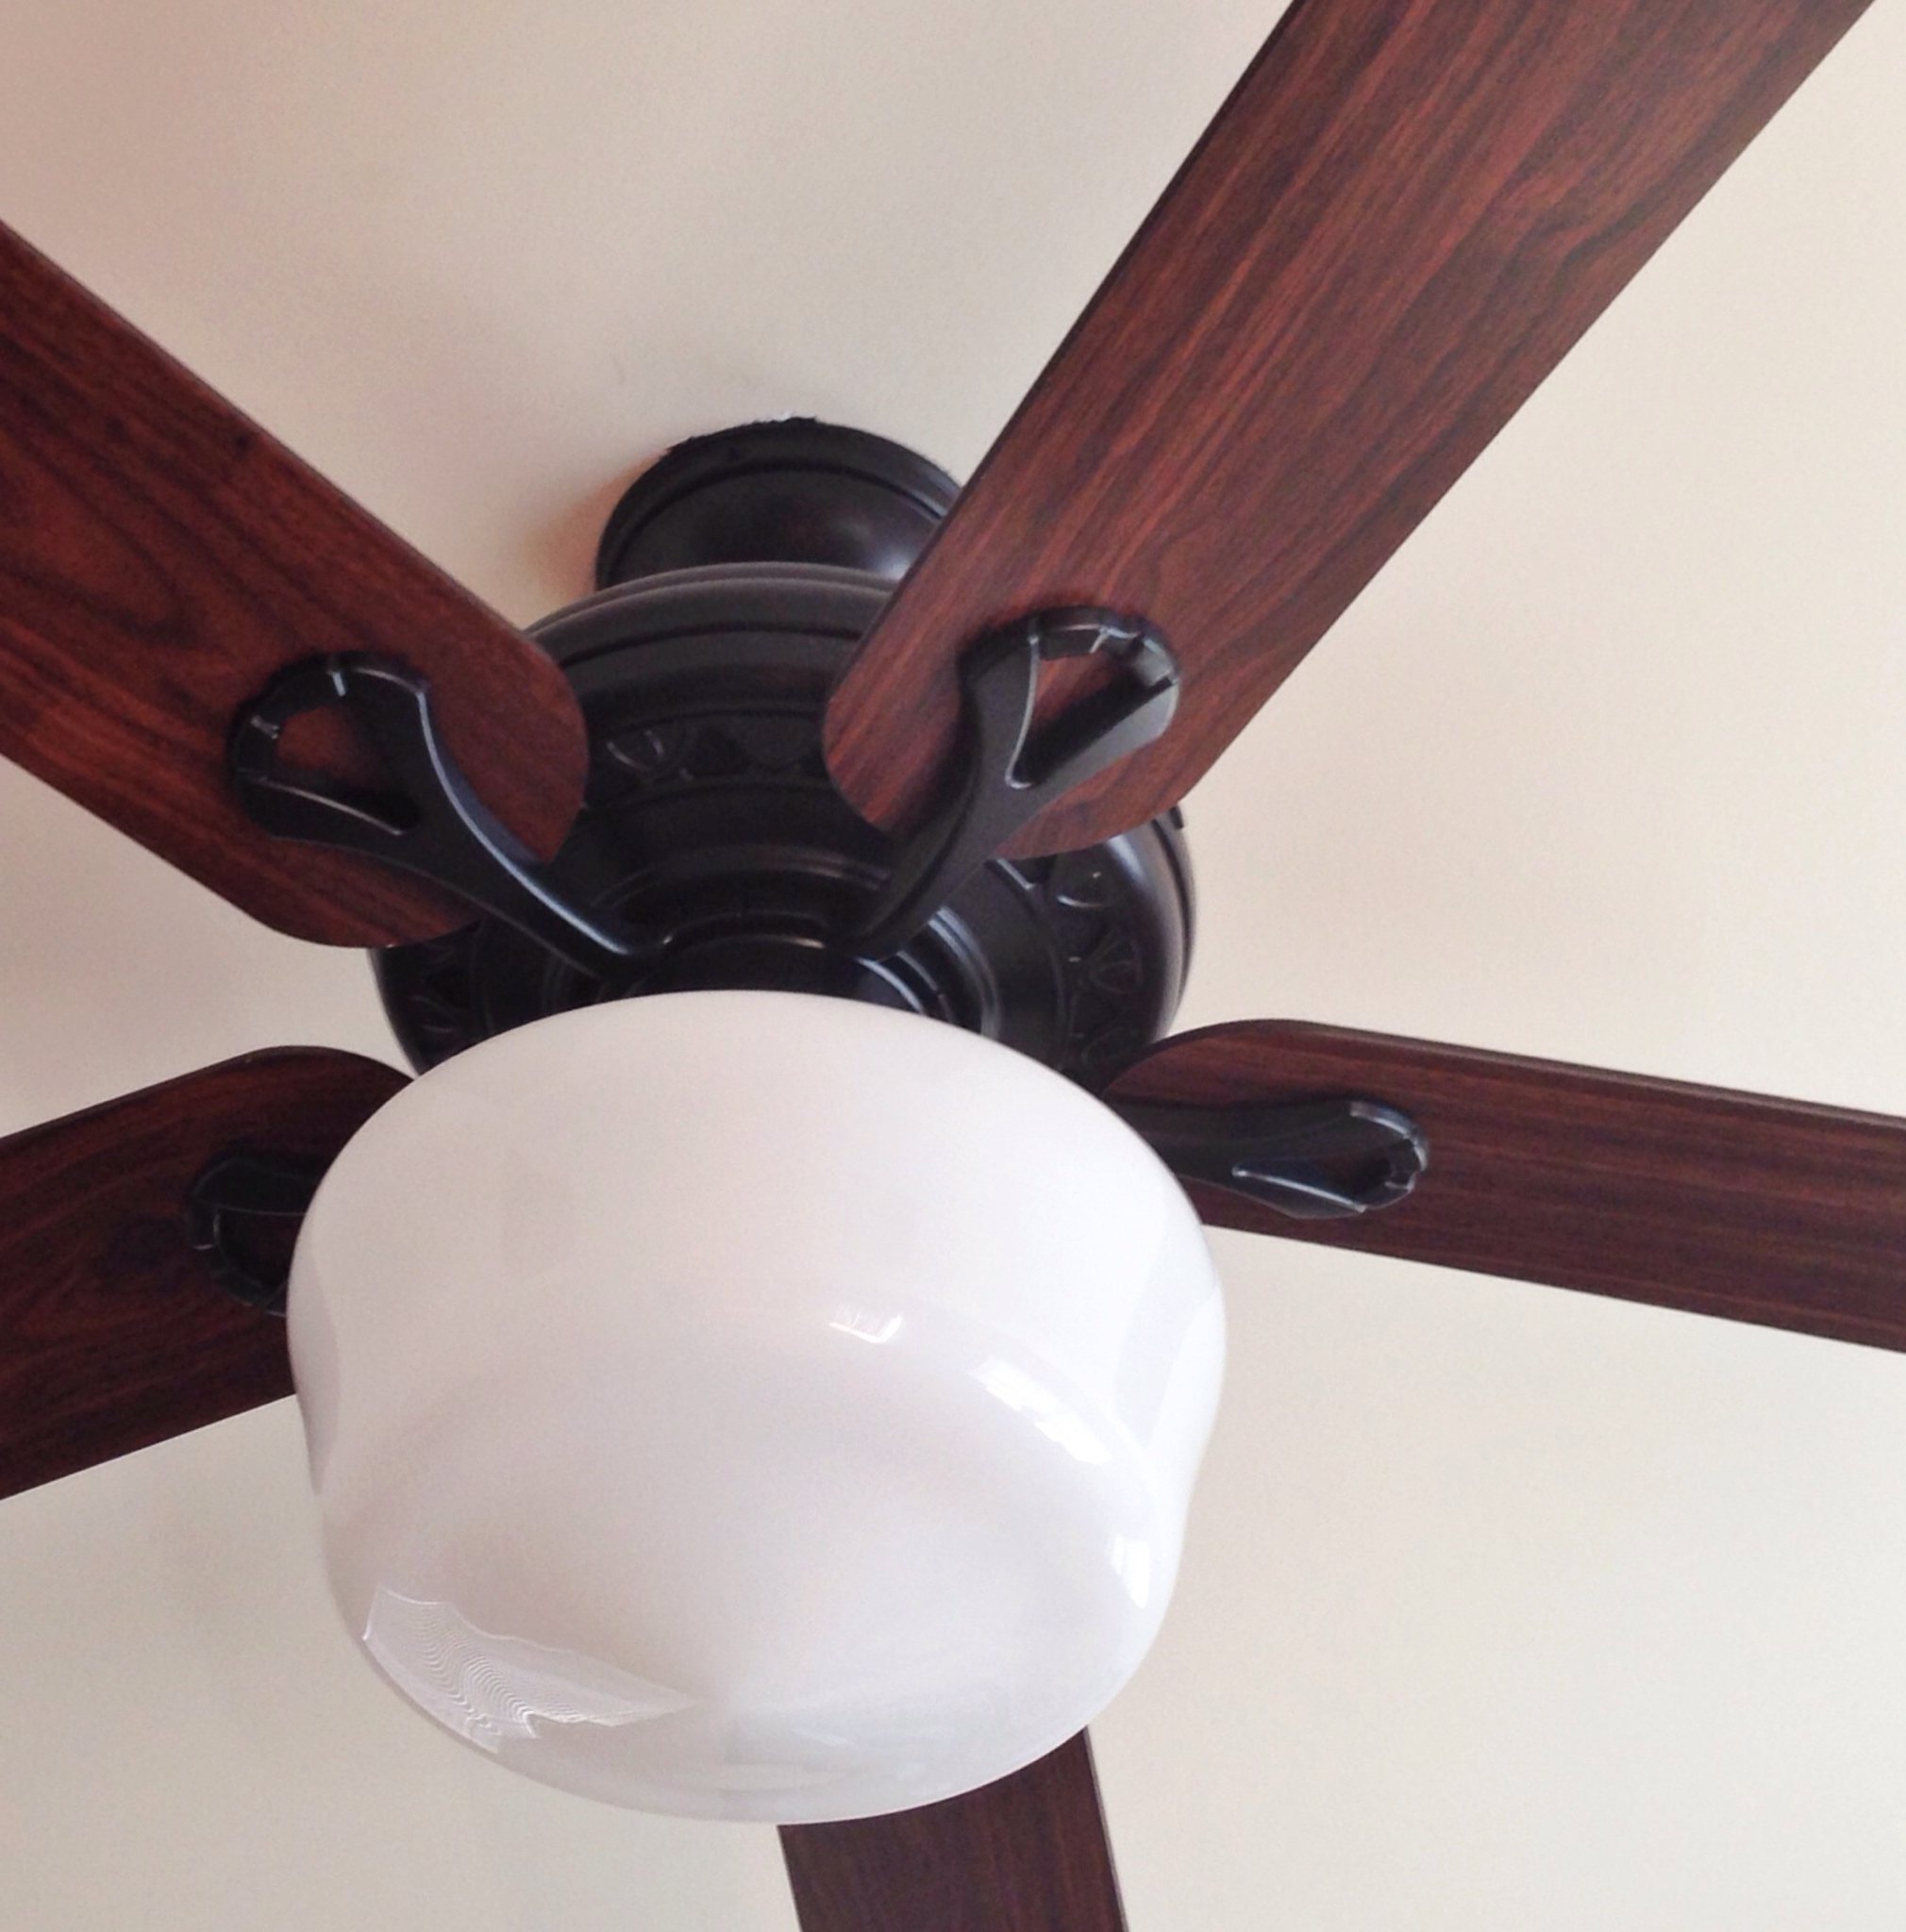 Outdoor Ceiling Fans With Schoolhouse Light For Most Up To Date Ceiling Fan With Schoolhouse Light Luxury Home Depot Ceiling Fans (View 13 of 20)